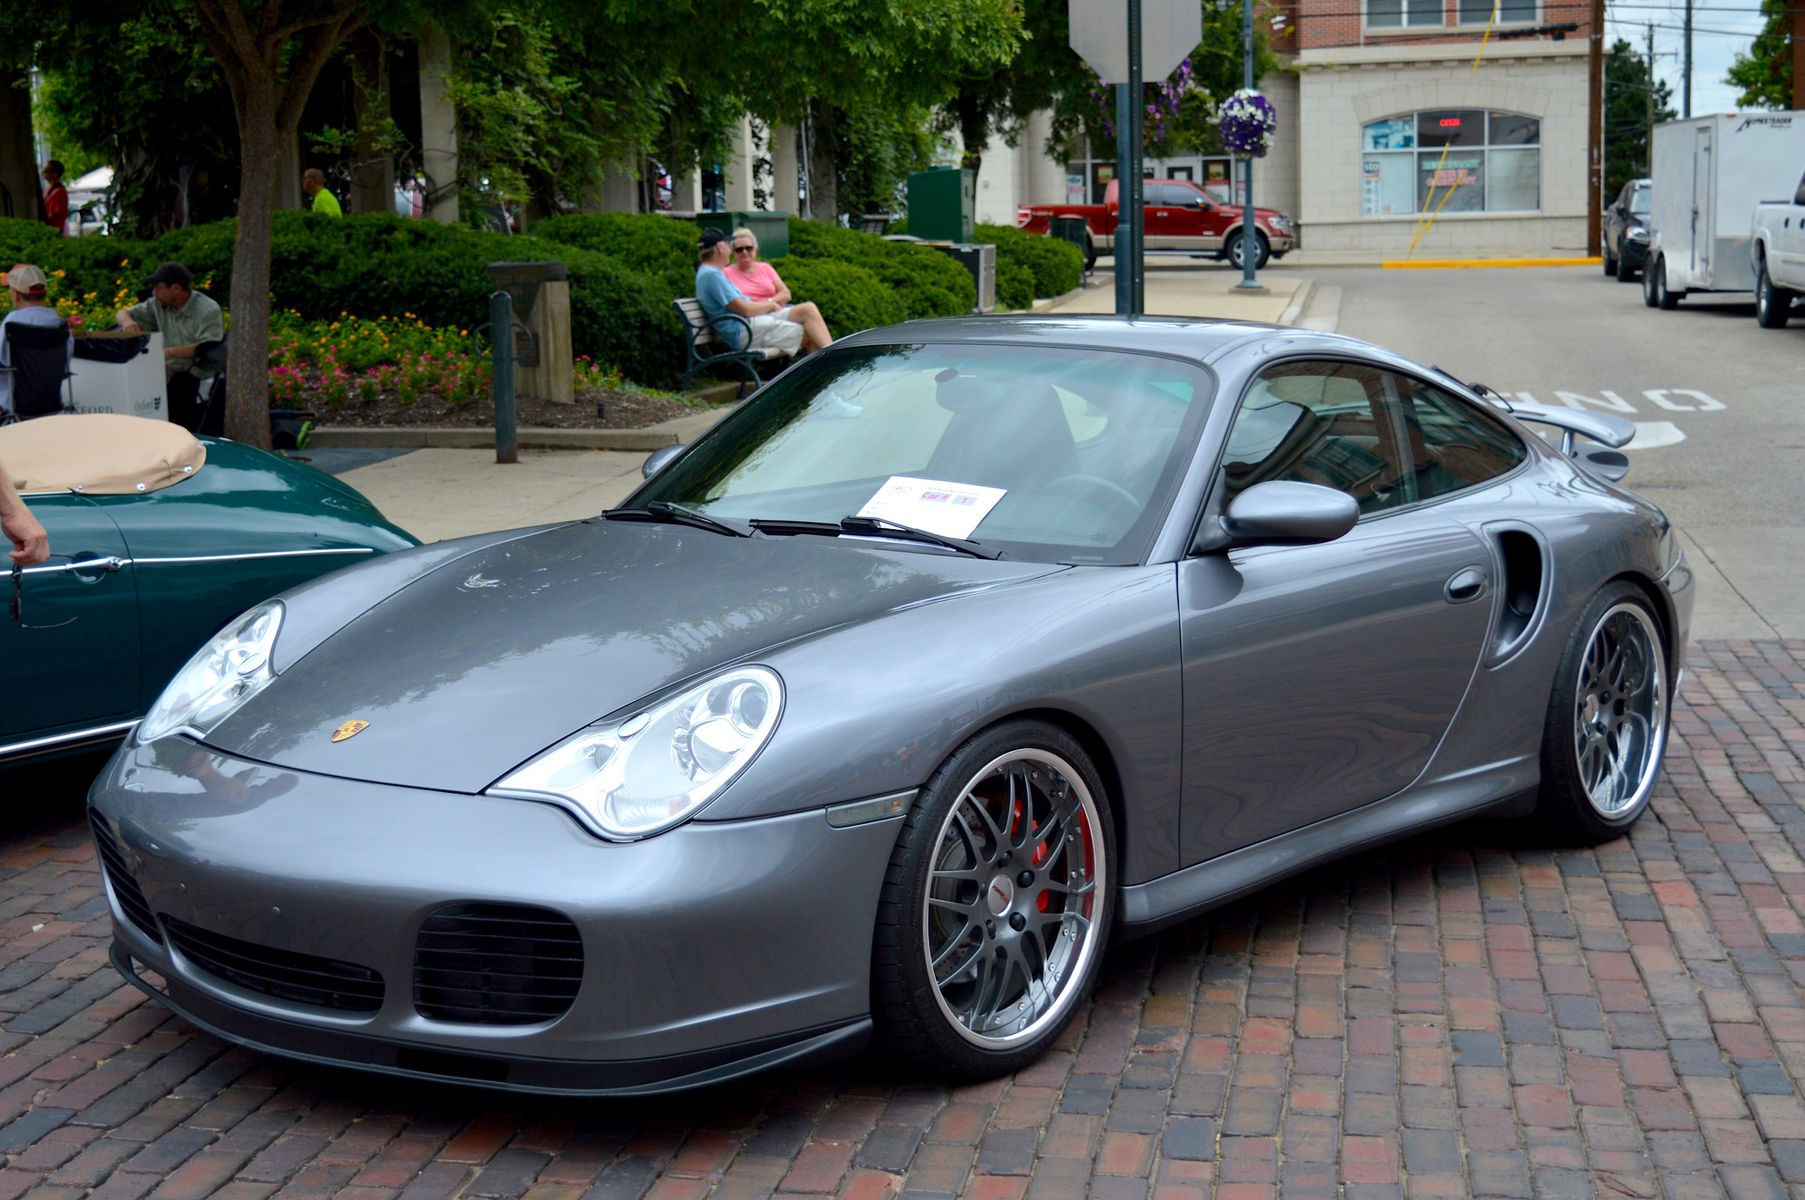 2002 Porsche 911 | Ken Brightman's Porsche 996 Turbo at RBR2016 on Forgeline DE3P Wheels